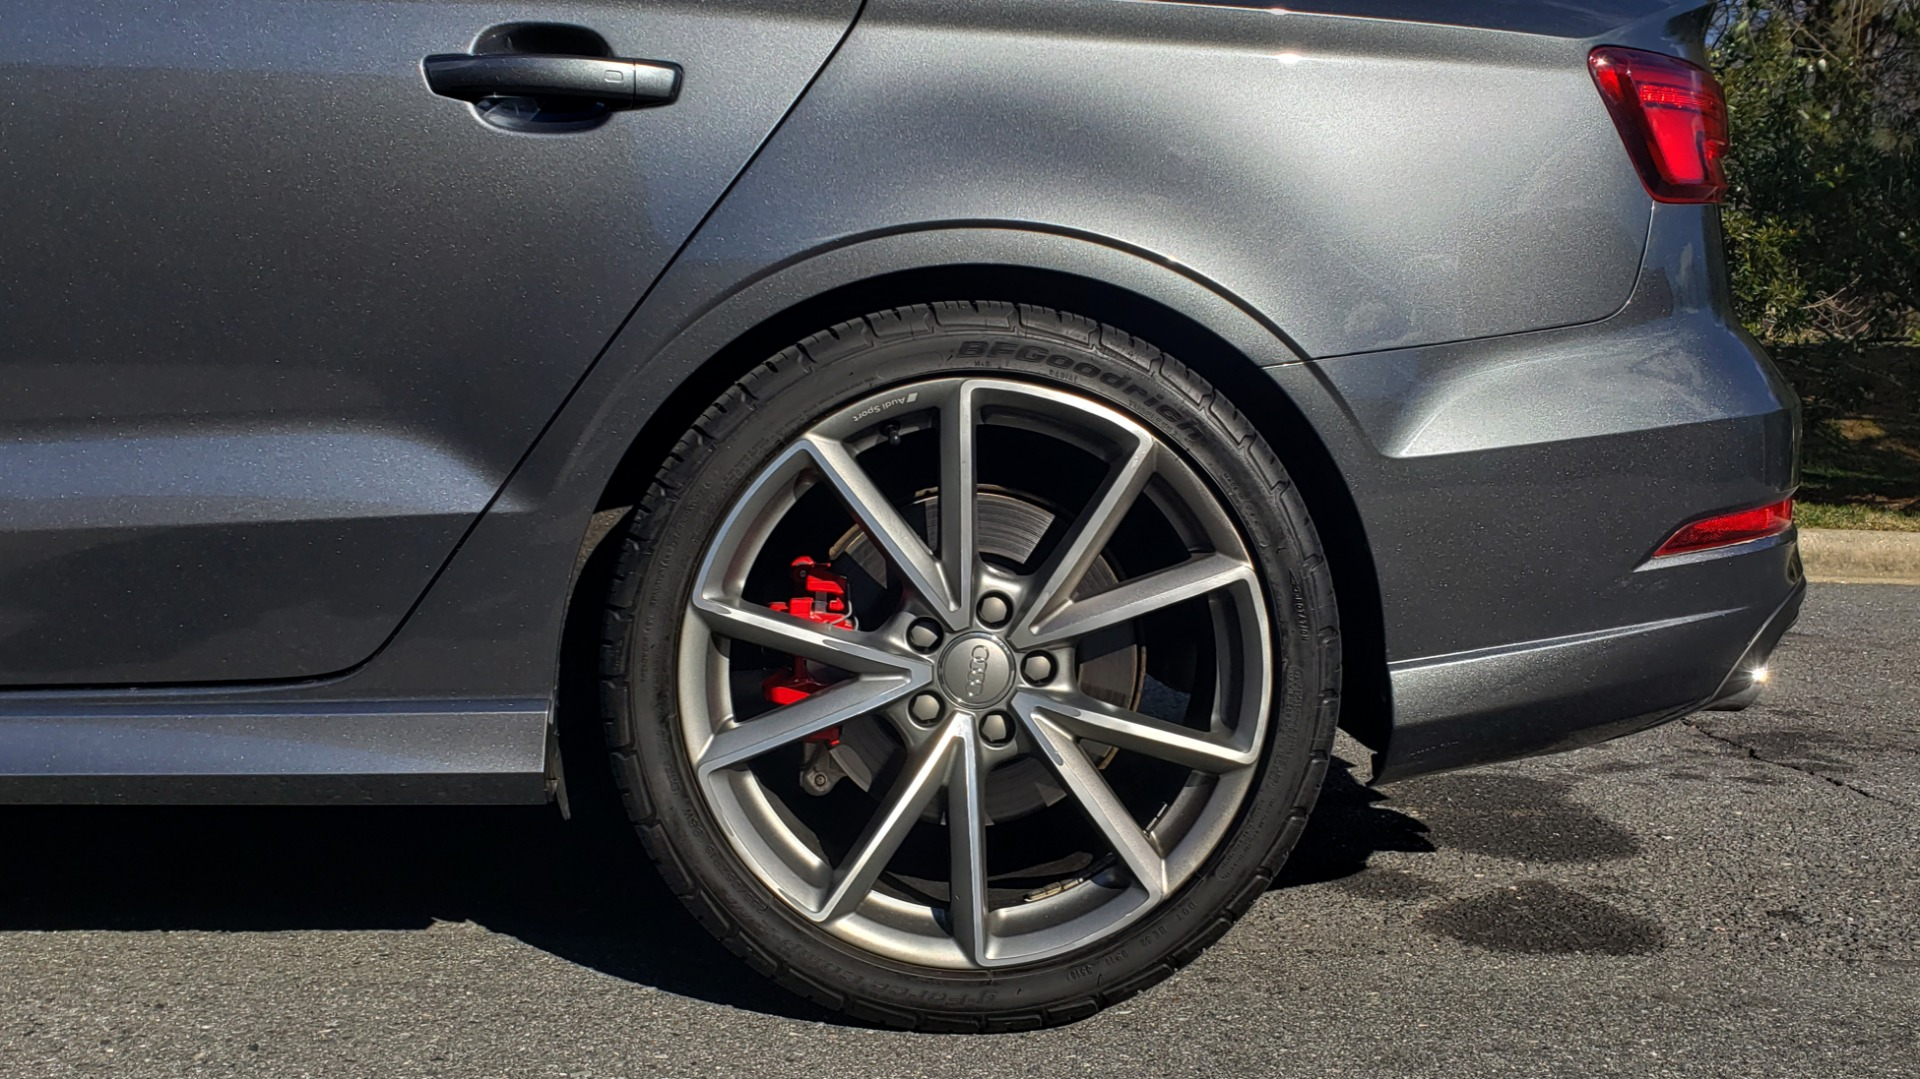 Used 2018 Audi S3 PREMIUM PLUS / TECH / NAV / BLACK OPTIC / S-SPORT / REARVIEW for sale $32,995 at Formula Imports in Charlotte NC 28227 84